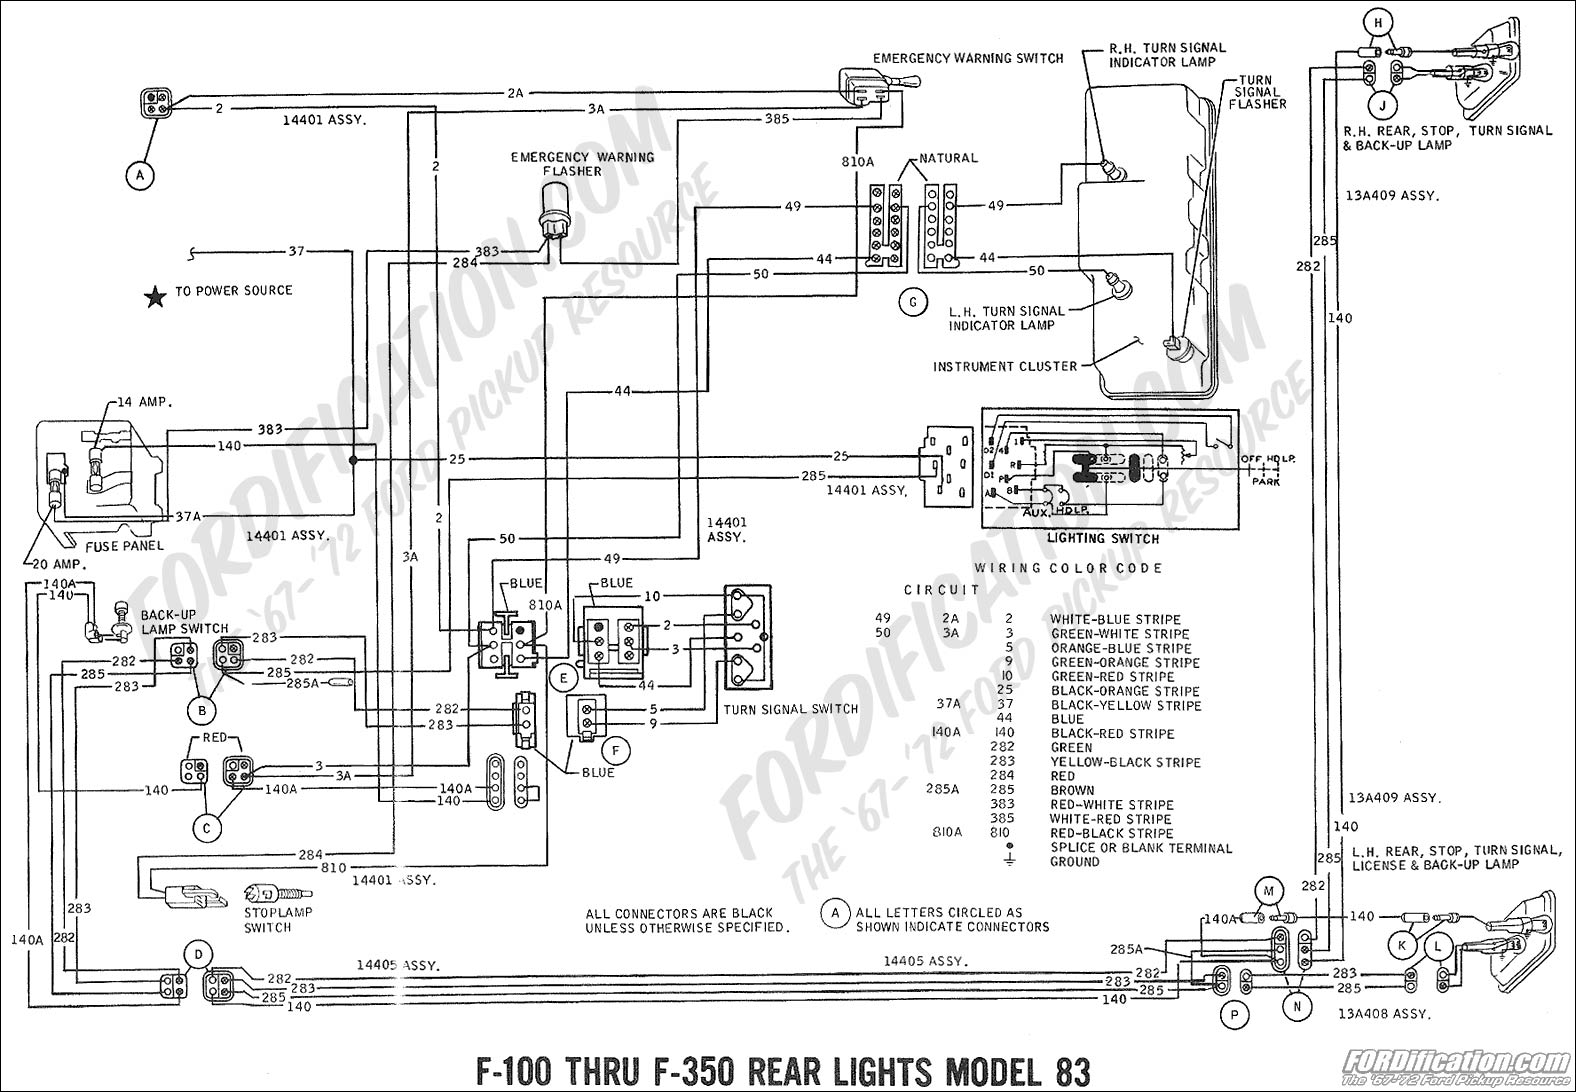 wiring_69rearlights mdl83 2 1977 ford f100 alternator wiring diagram wiring diagram and ford truck wiring schematics at alyssarenee.co